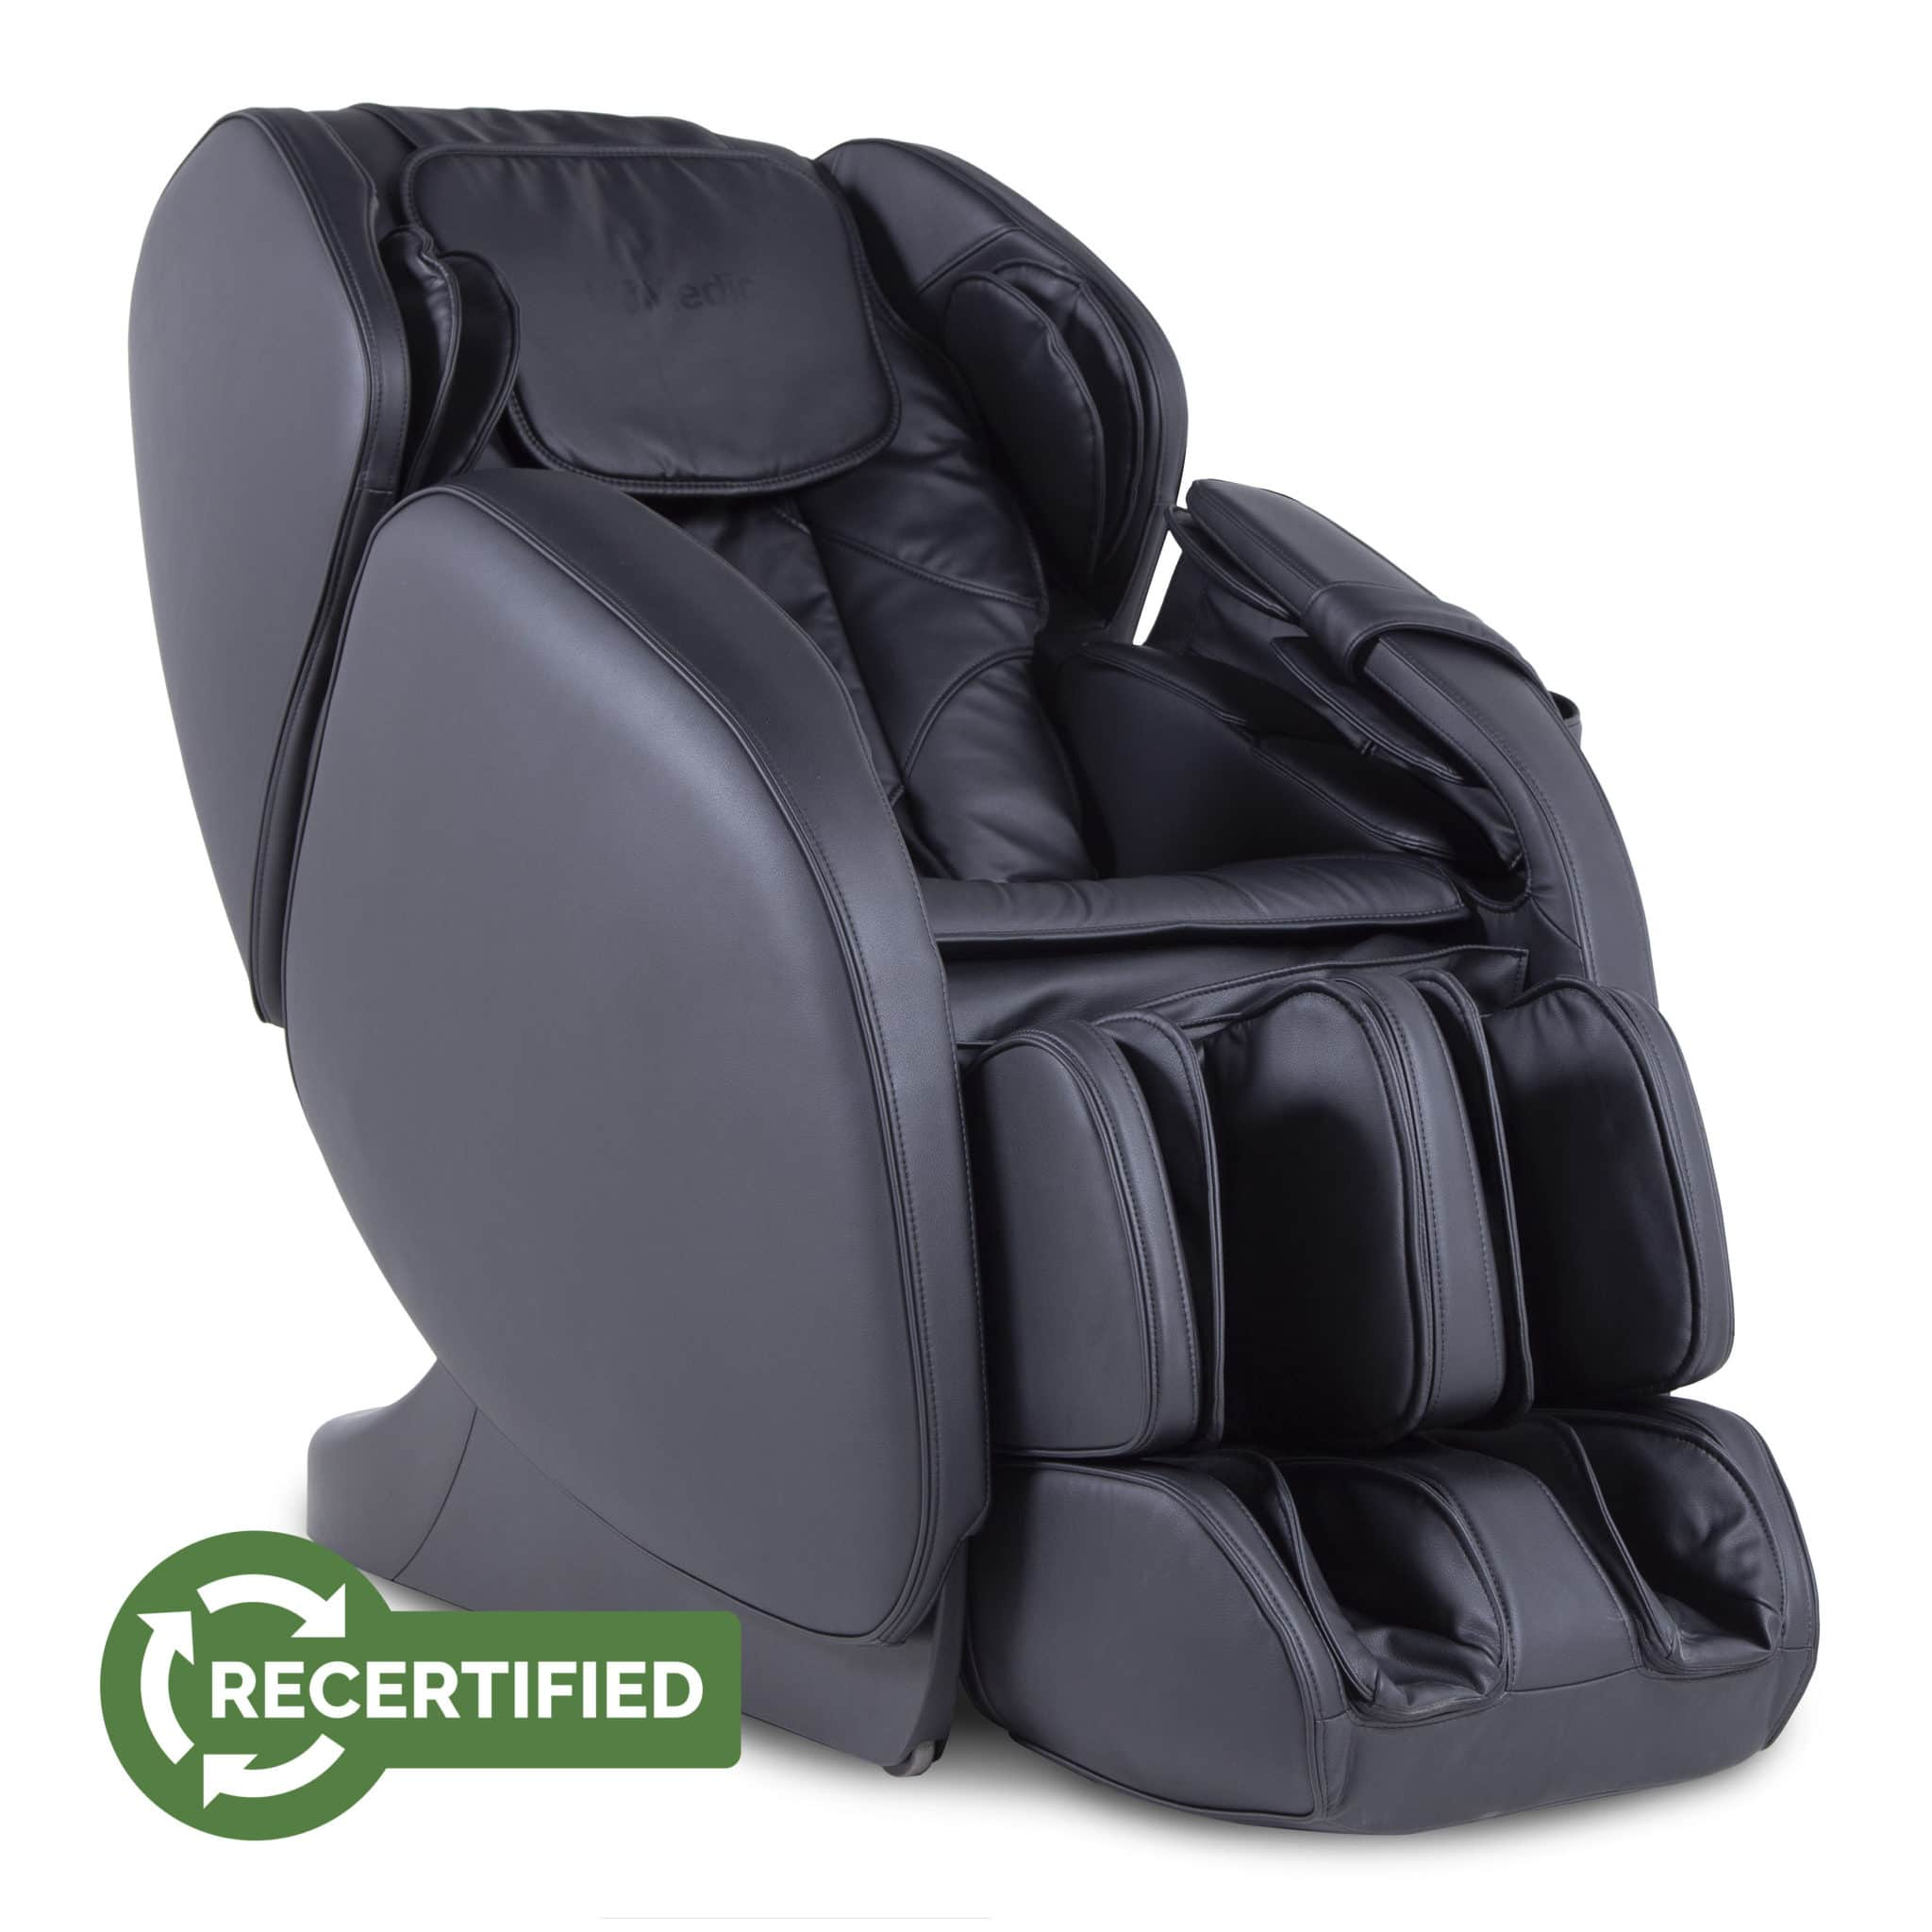 Recertified InstaShiatsu+ Massage Chair MC-1500 - truMedic